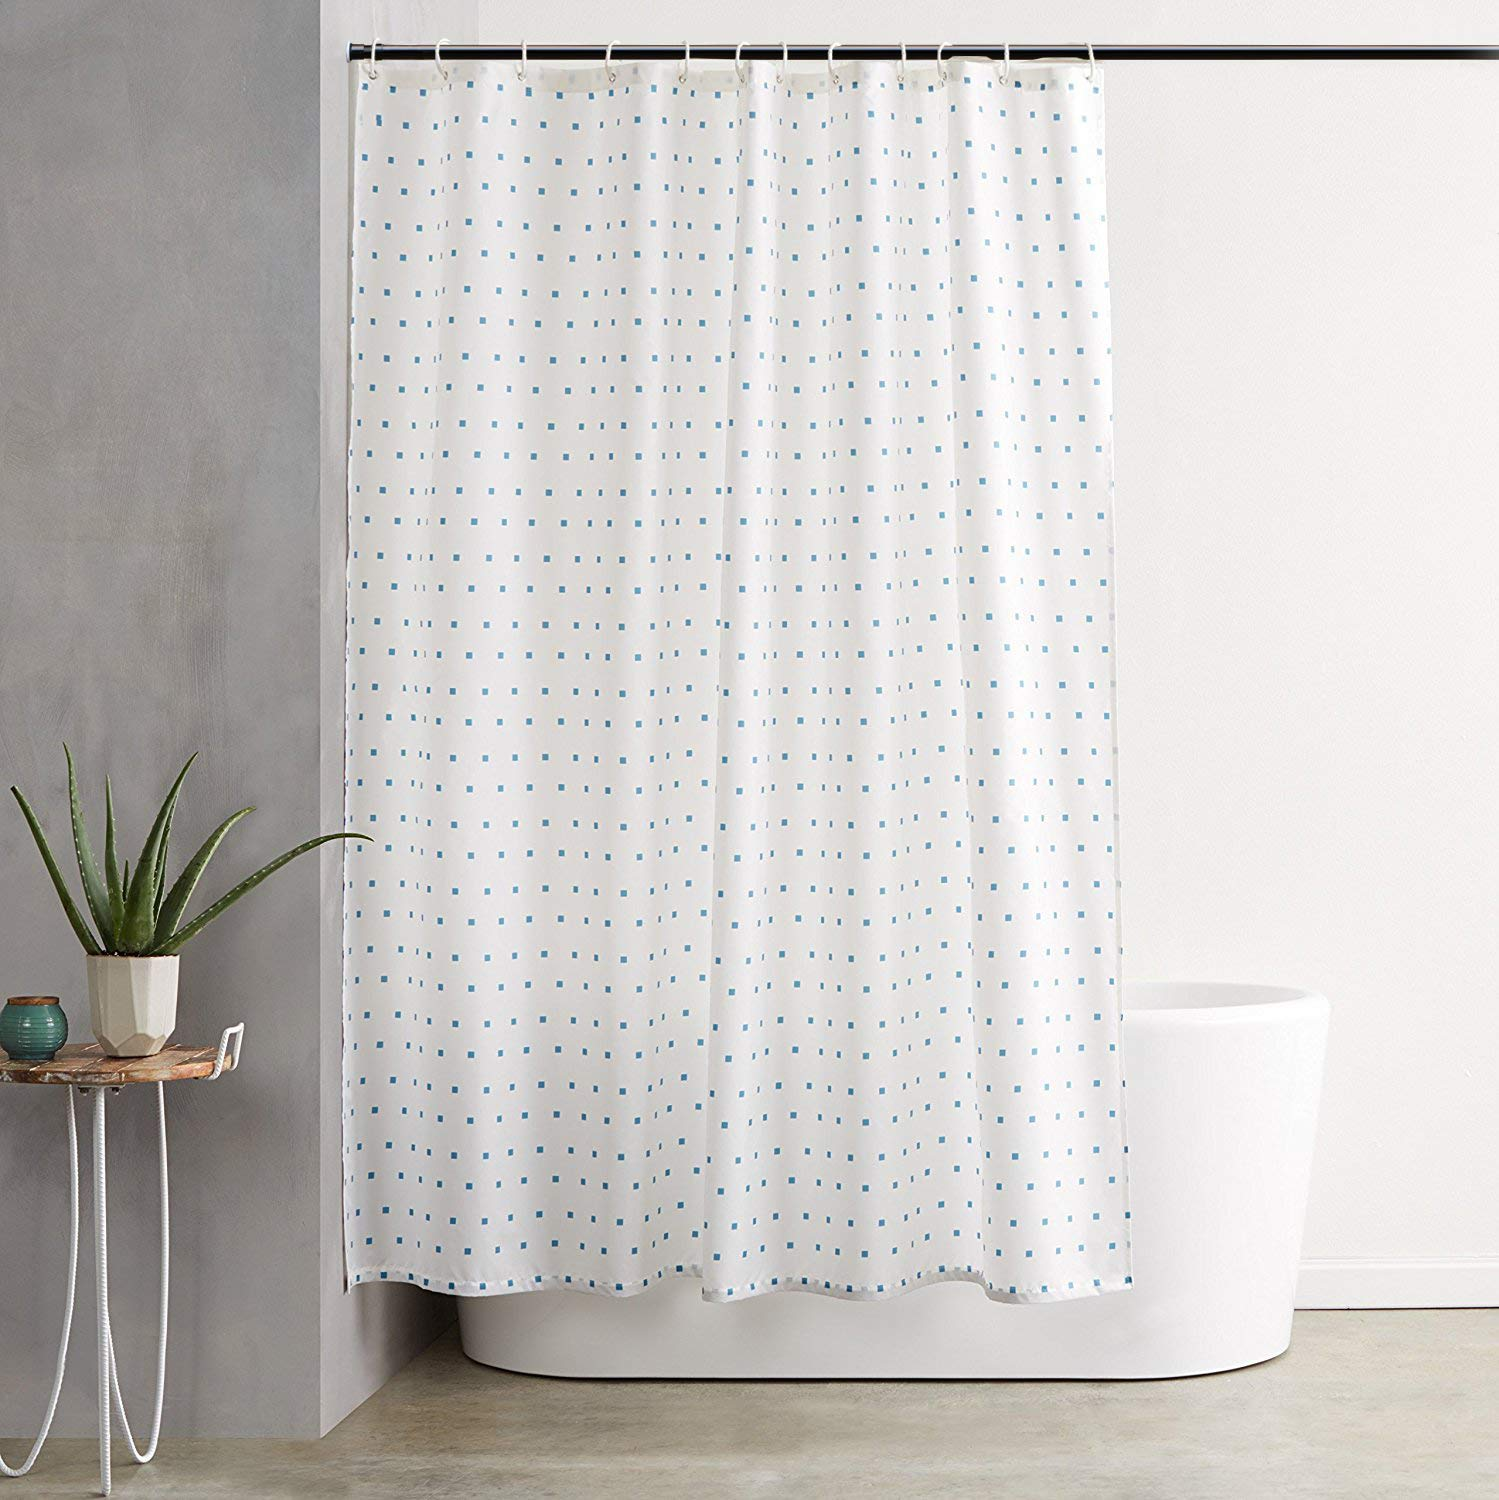 Vailge Room Divider Tension Curtain Rod, Tension Shower ...